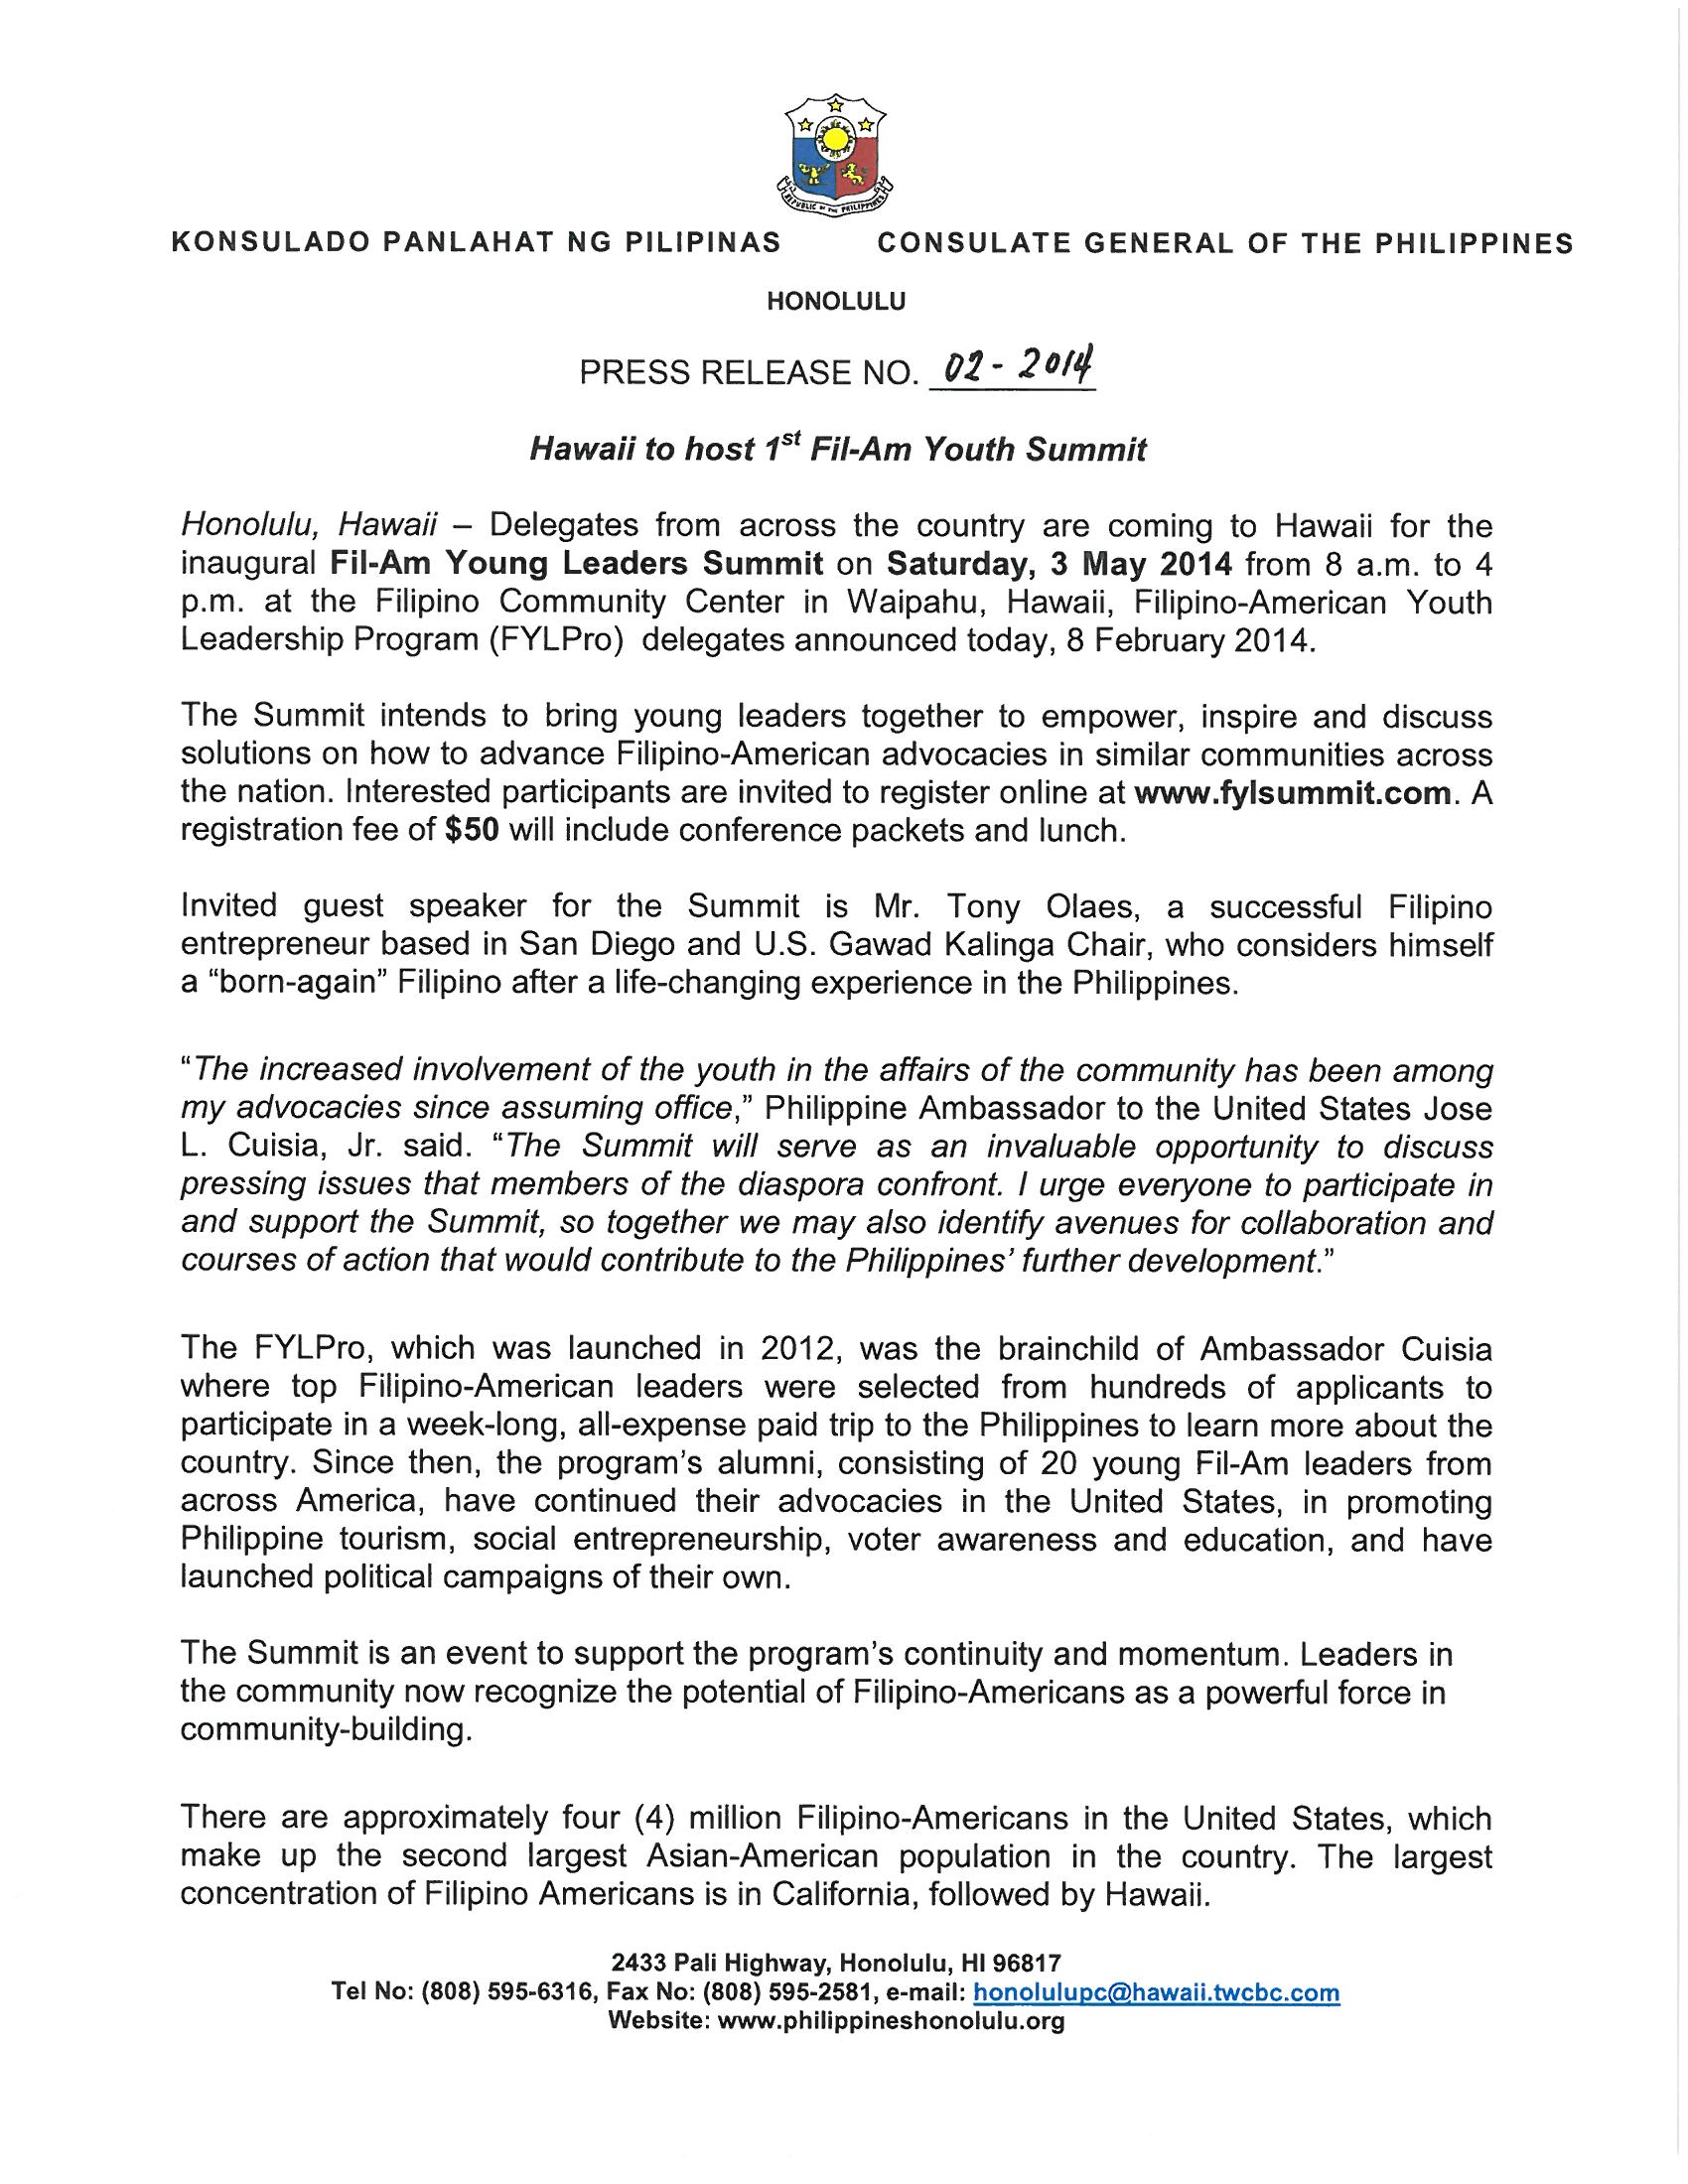 PR-02-2014 Hawaii to Host 1st Fil-Am Youth Summit (page  1)